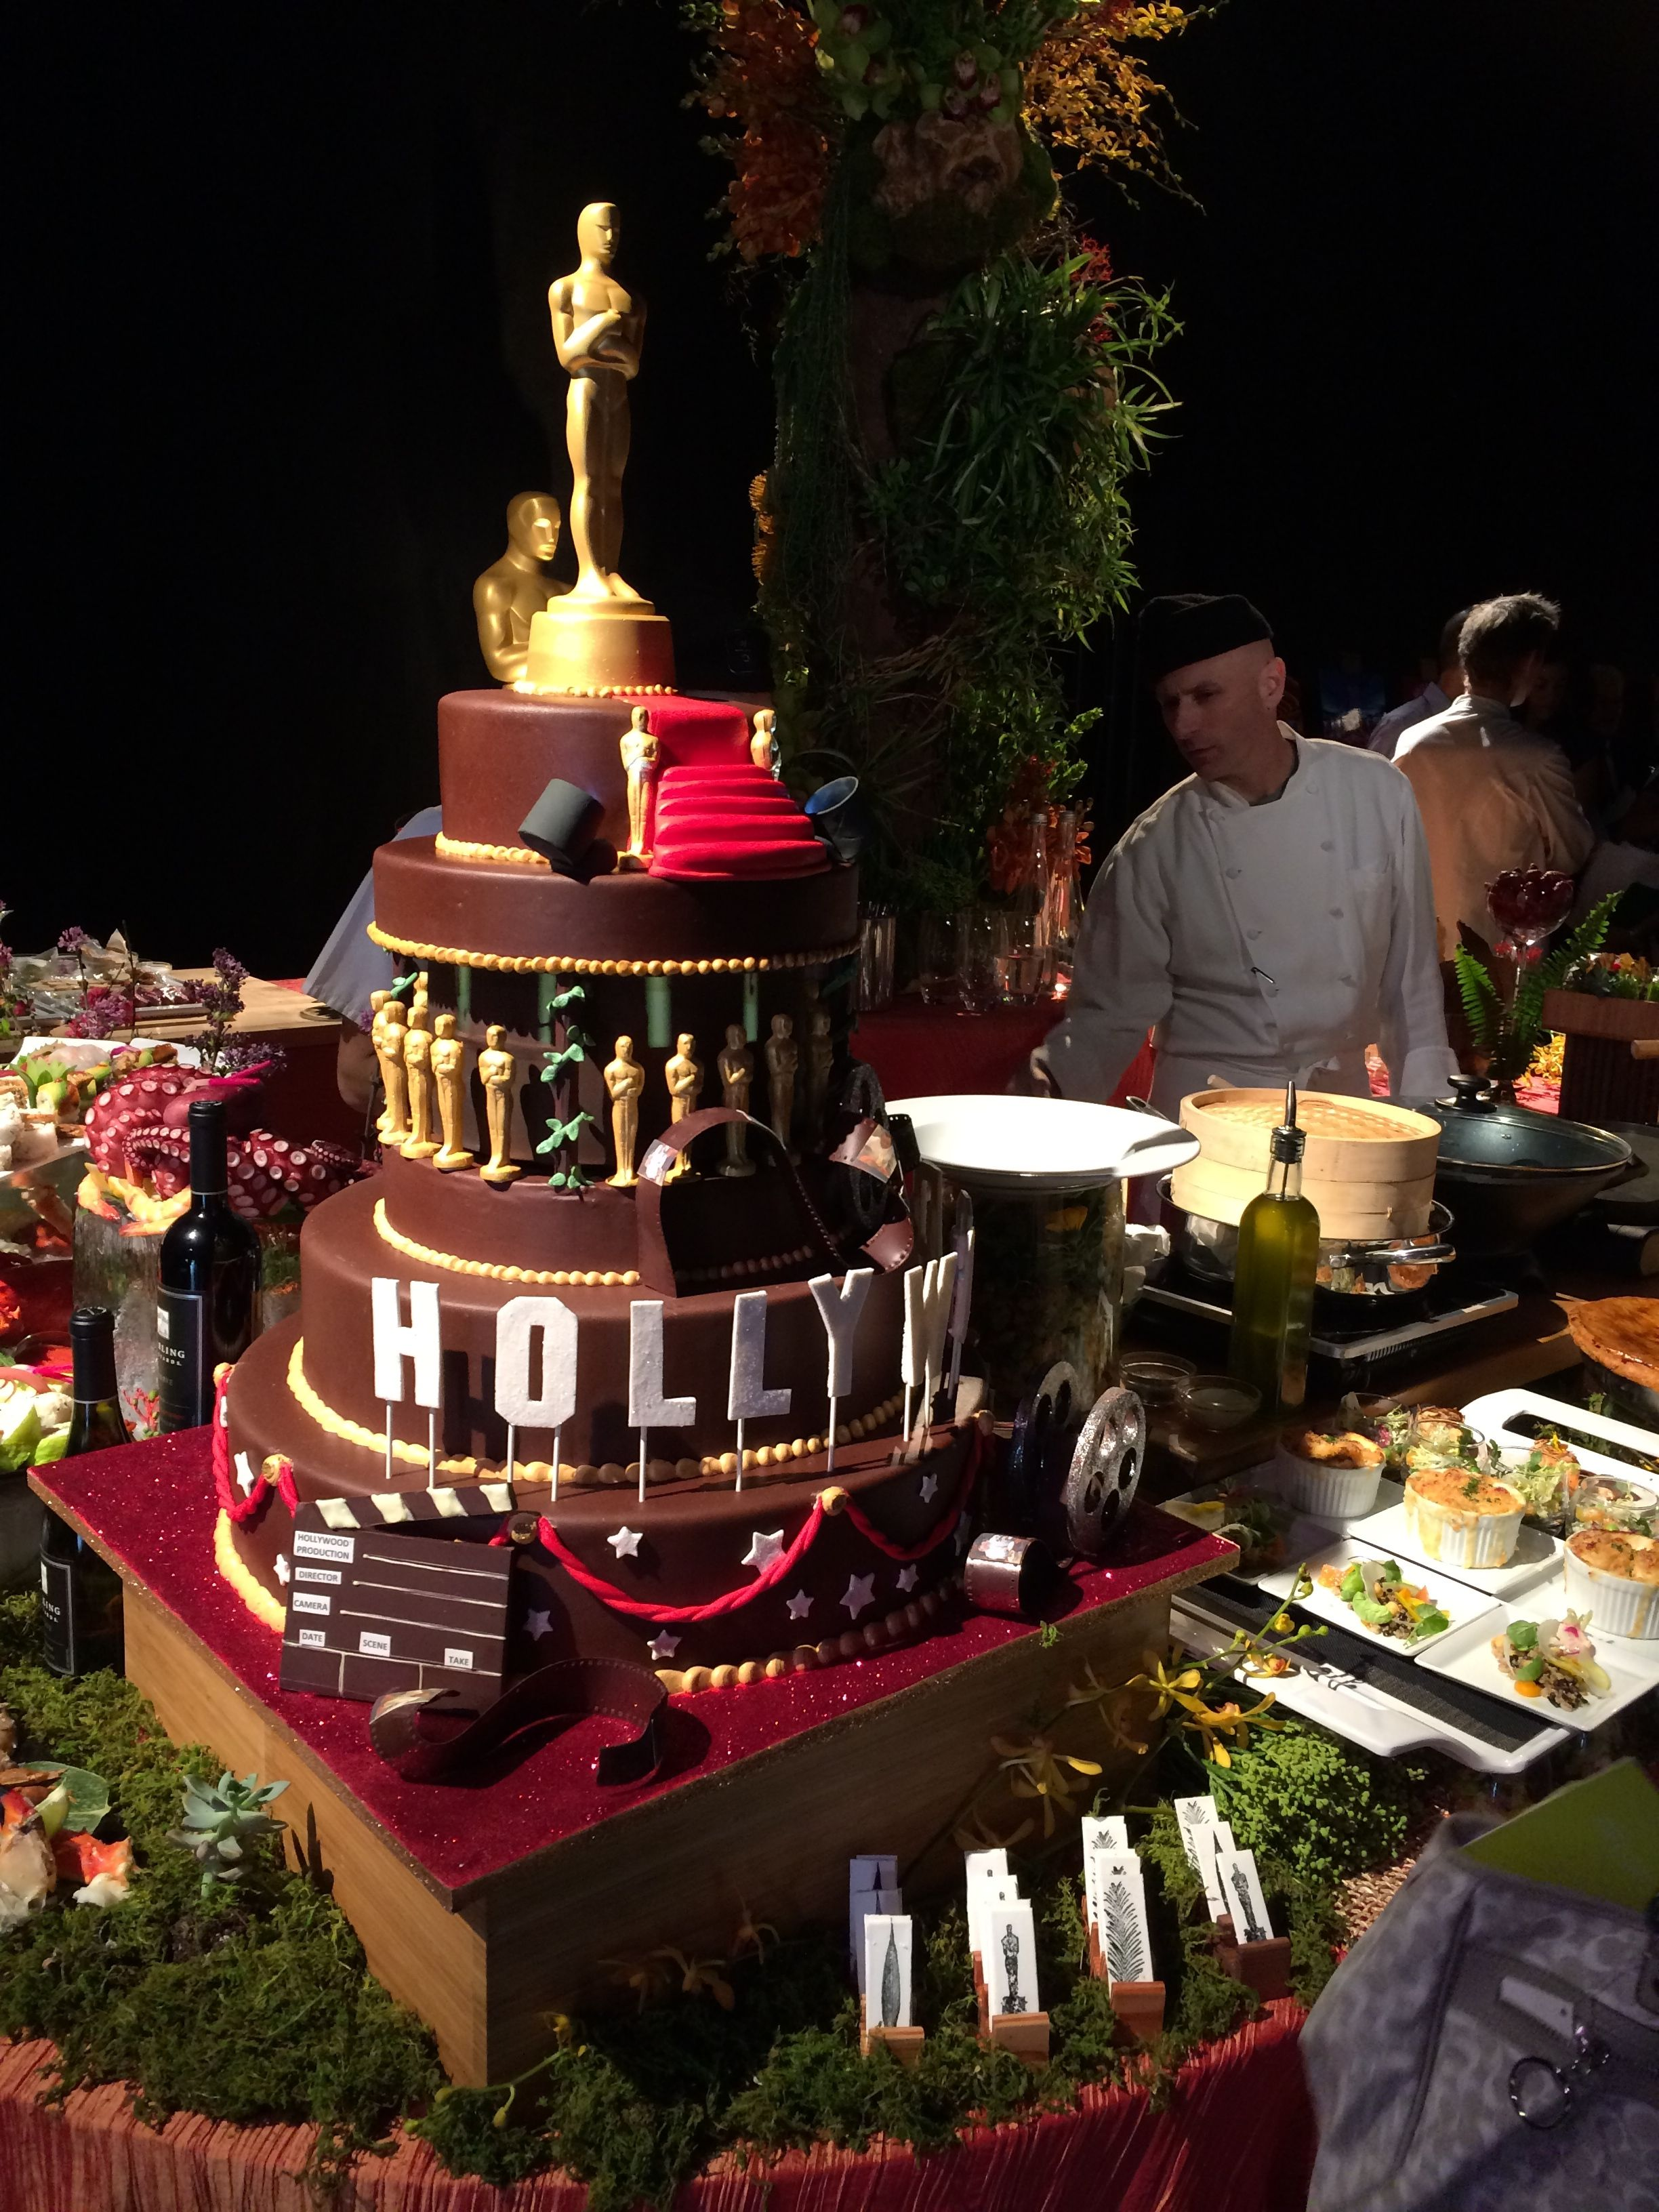 Shall We Serve This Hollywood Cake From Wolfgang Puck At